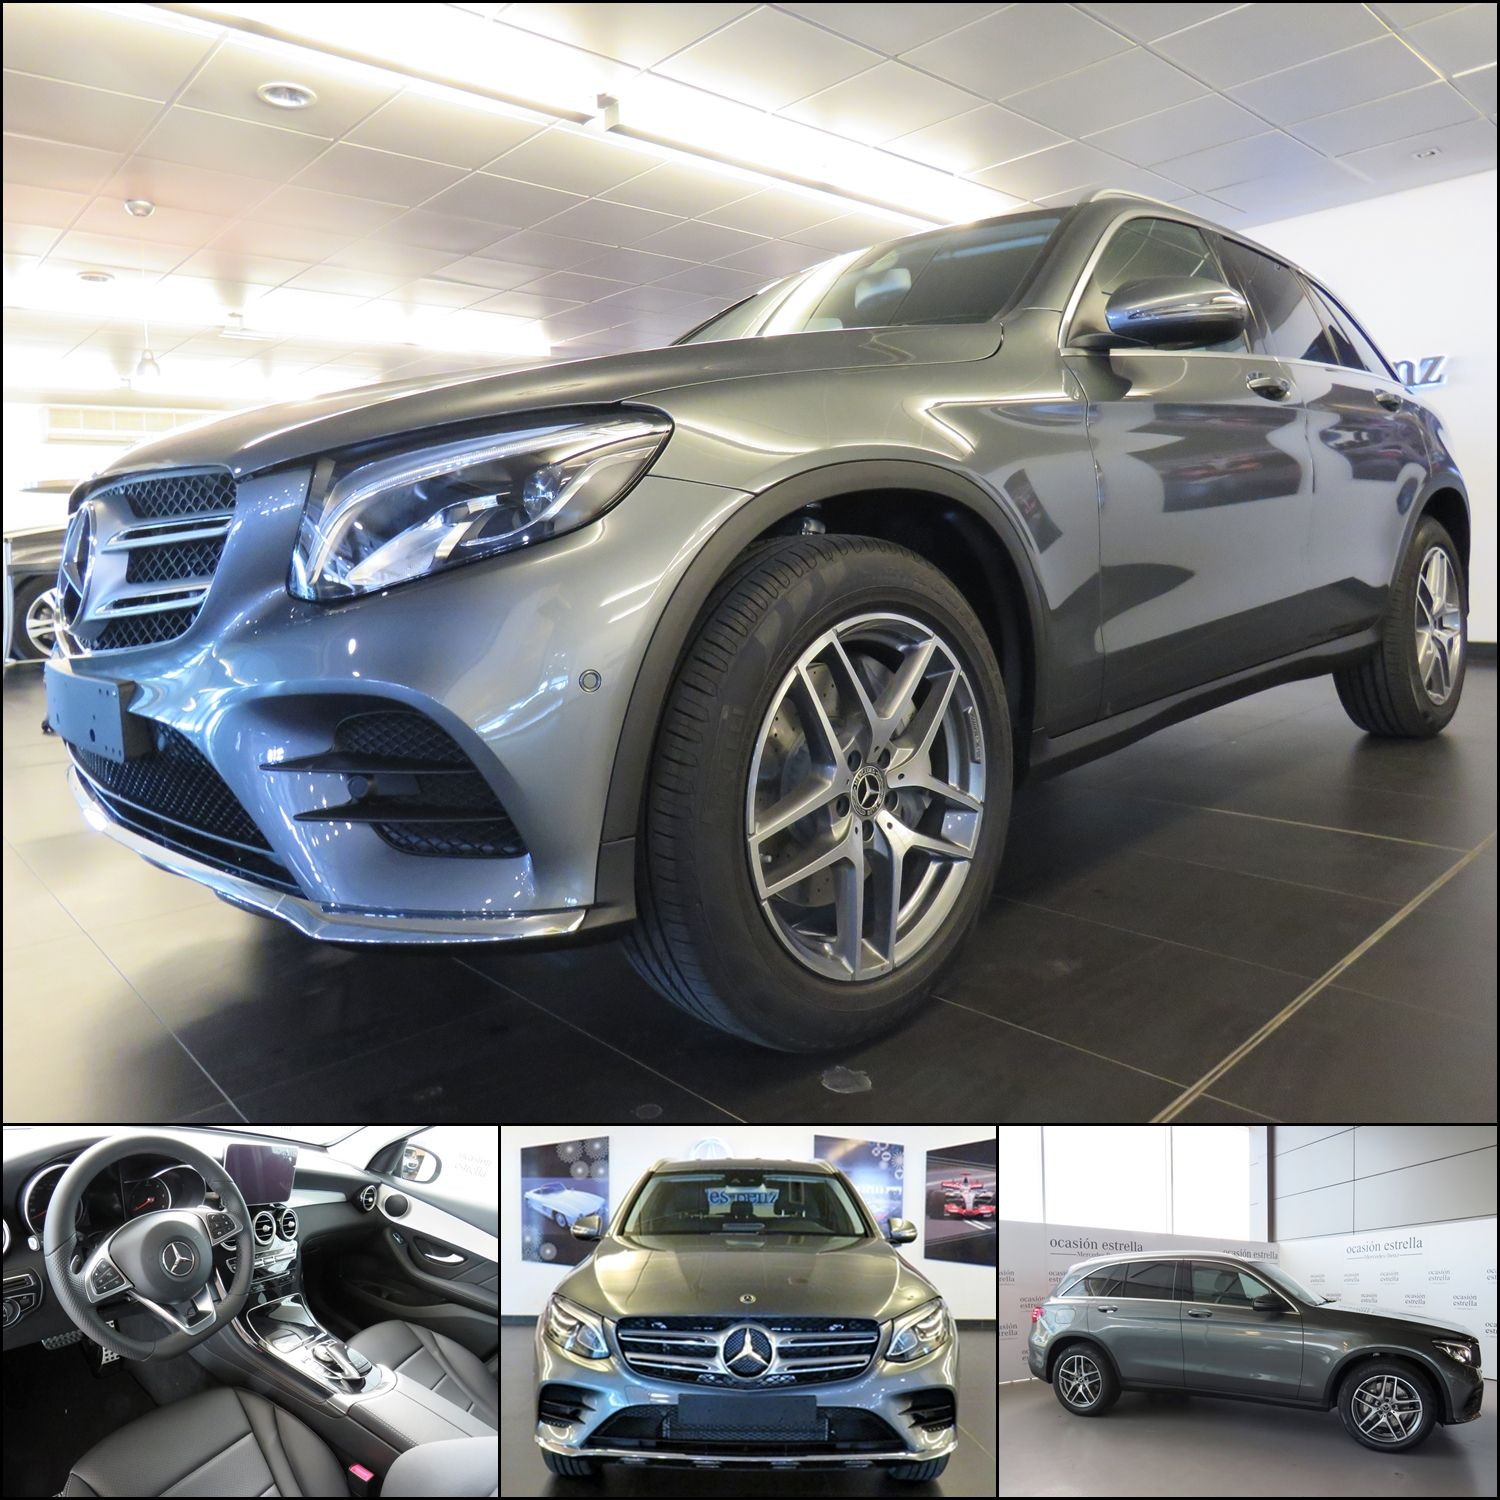 Mercedes Km Pin By Autocas On Mercedes Benz Km En Autocas Pinterest